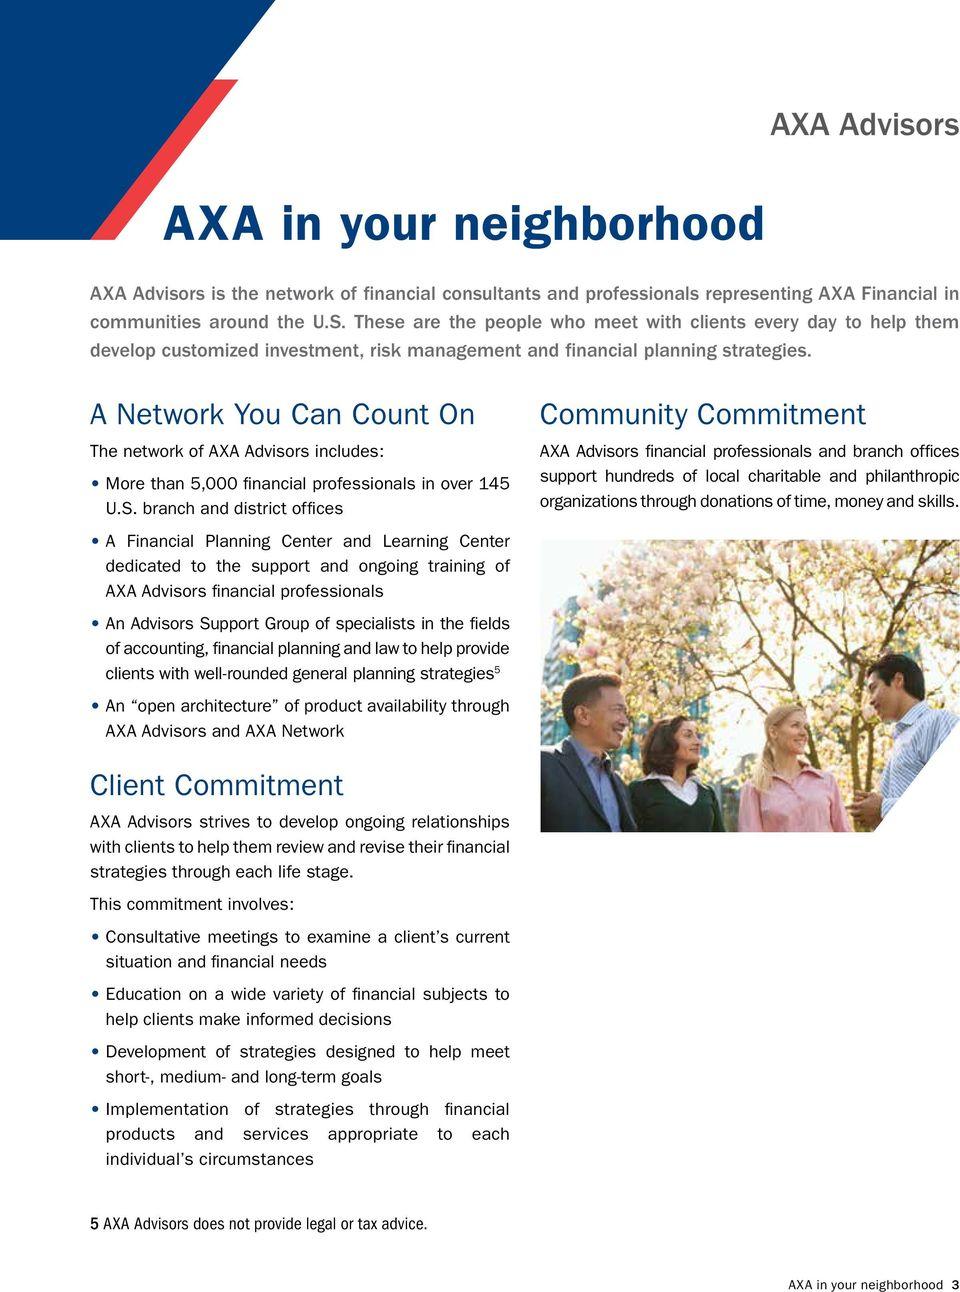 A Network You Can Count On The network of AXA Advisors includes: More than 5,000 financial professionals in over 145 U.S.